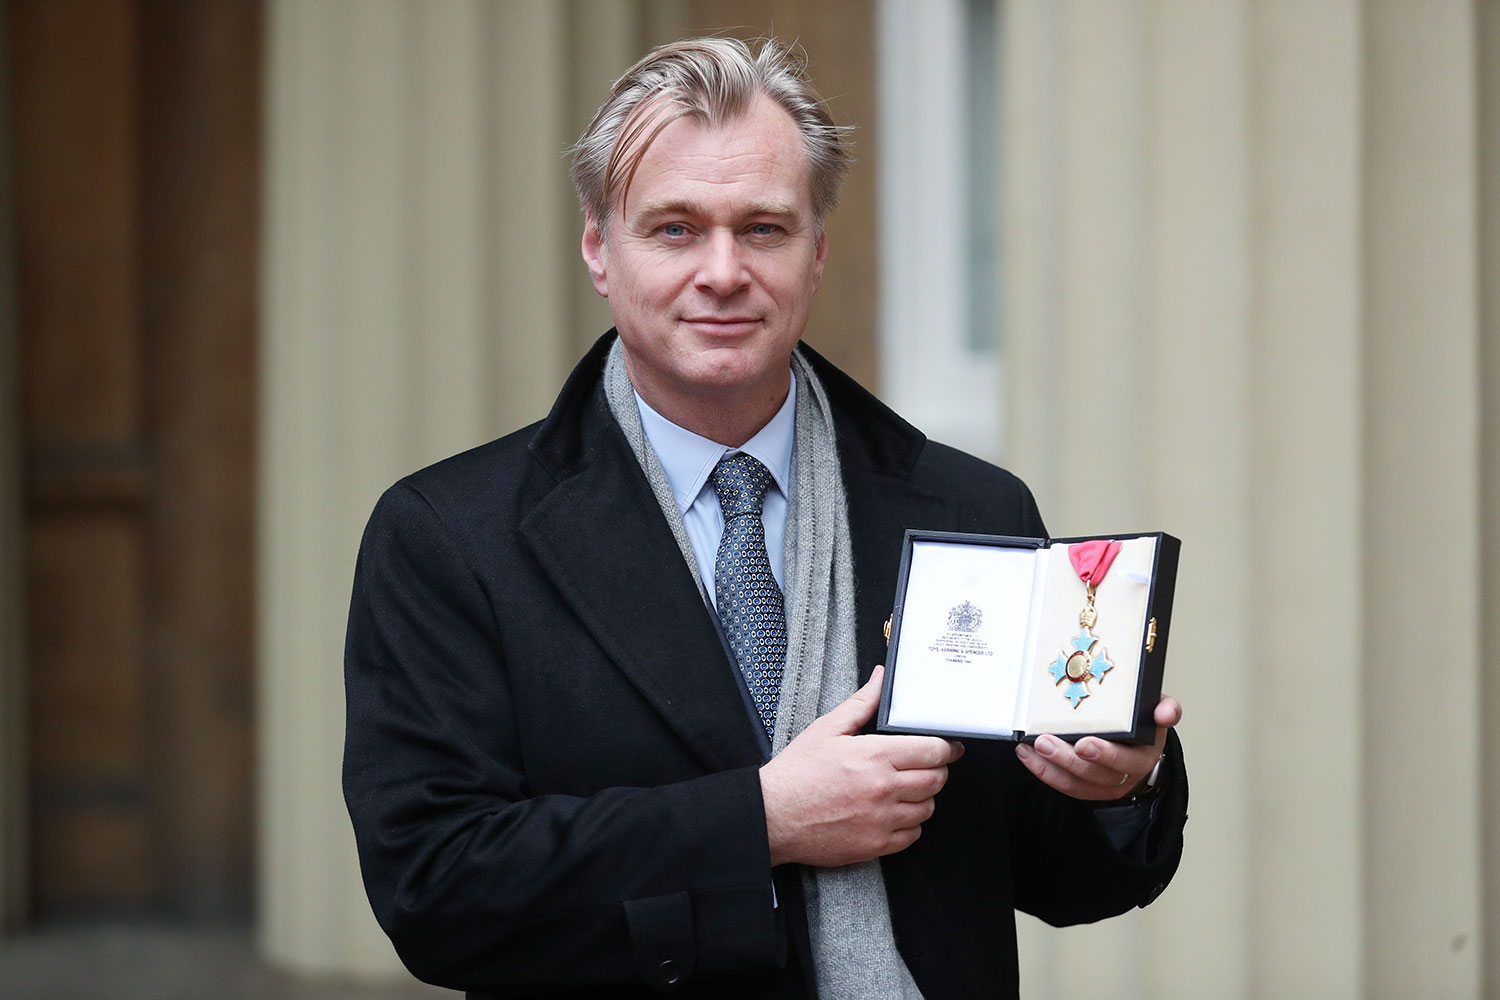 British-American director Christopher Nolan poses with his medal after he was made a Commander of the British Empire (CBE) for services to film during an investiture ceremony at Buckingham Palace, London on December 19, 2019.